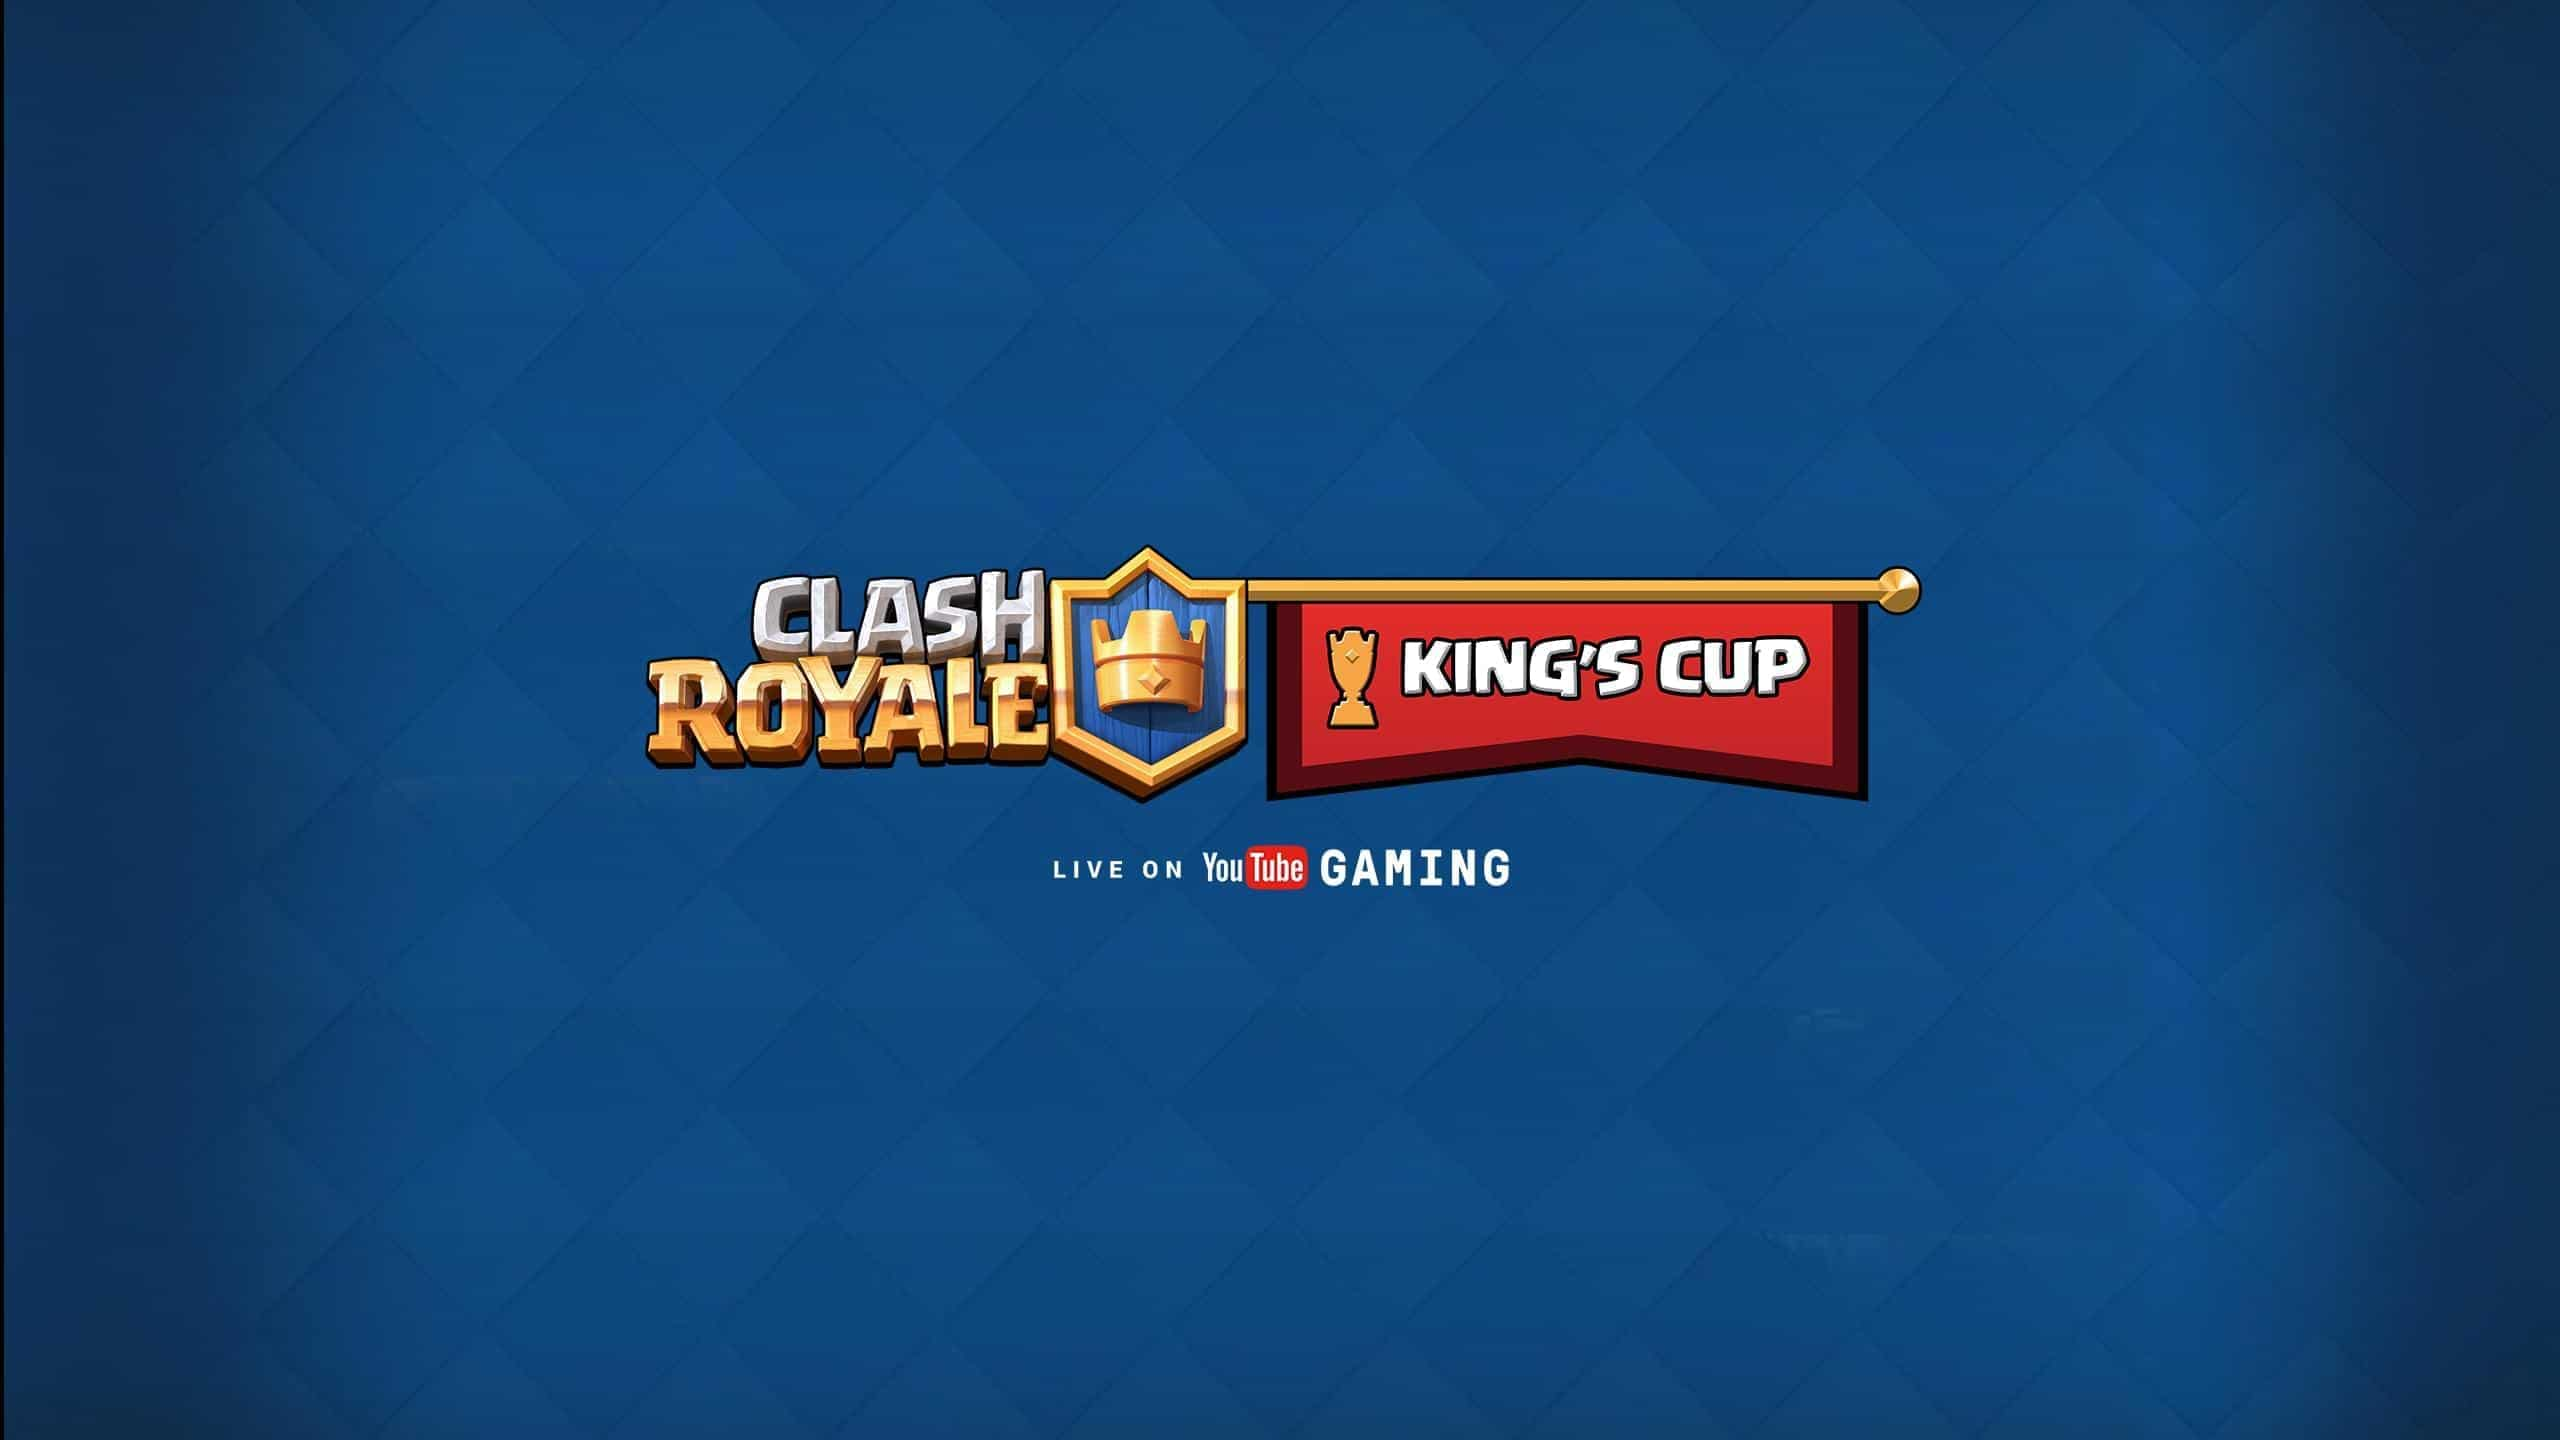 YouTube Gaming To Host Clash Royale King's Cup Tournament ...